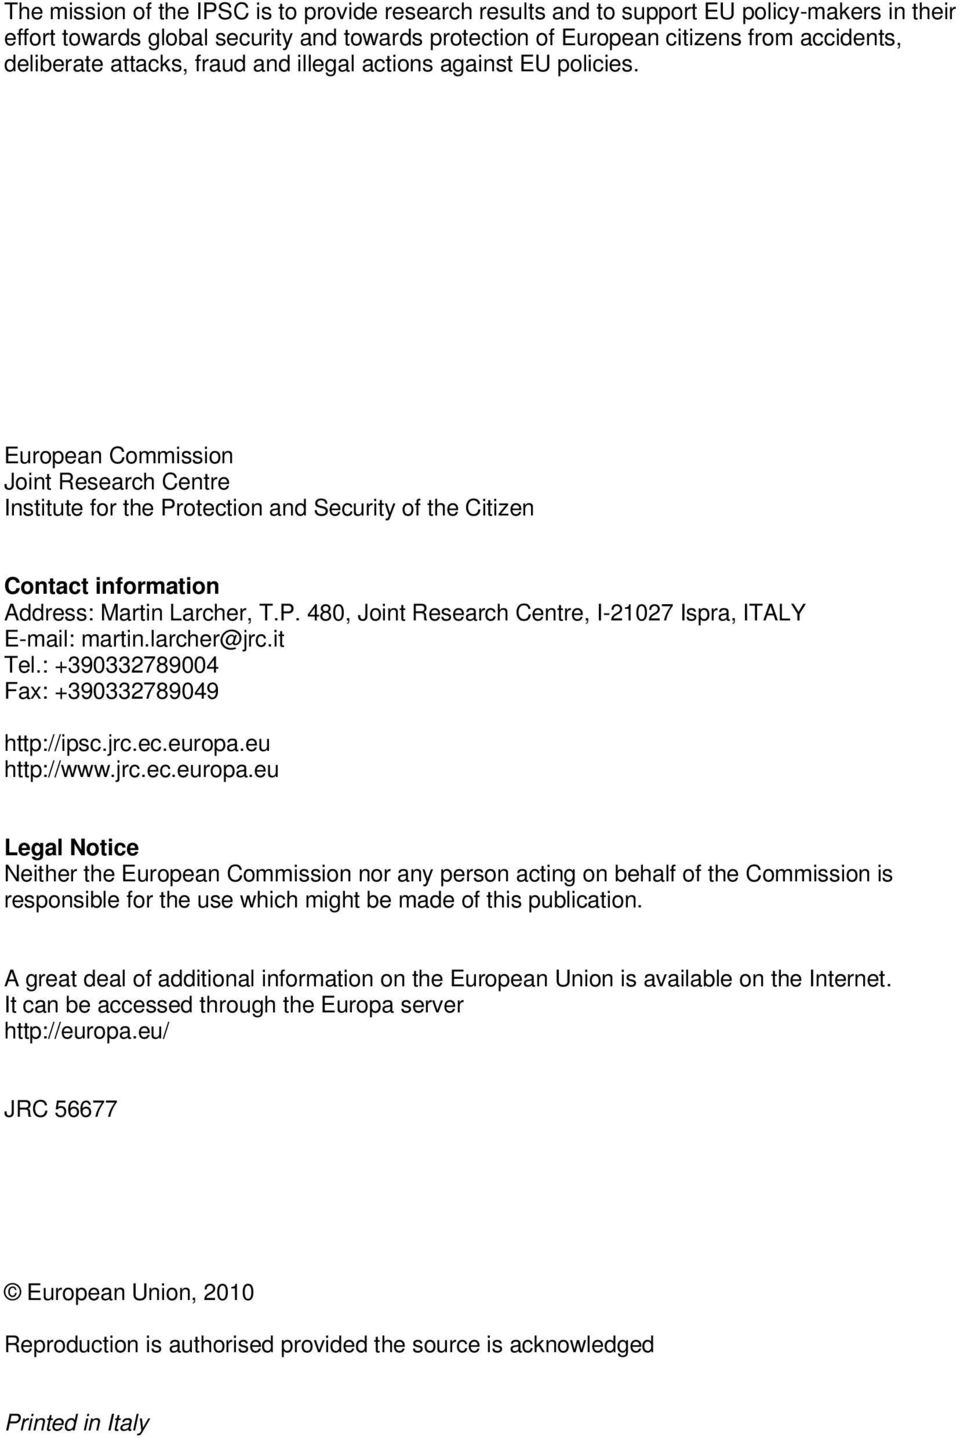 European Commission Joint Research Centre Institute for the Protection and Security of the Citizen Contact information Address: Martin Larcher, T.P. 480, Joint Research Centre, I-21027 Ispra, ITALY E-mail: martin.